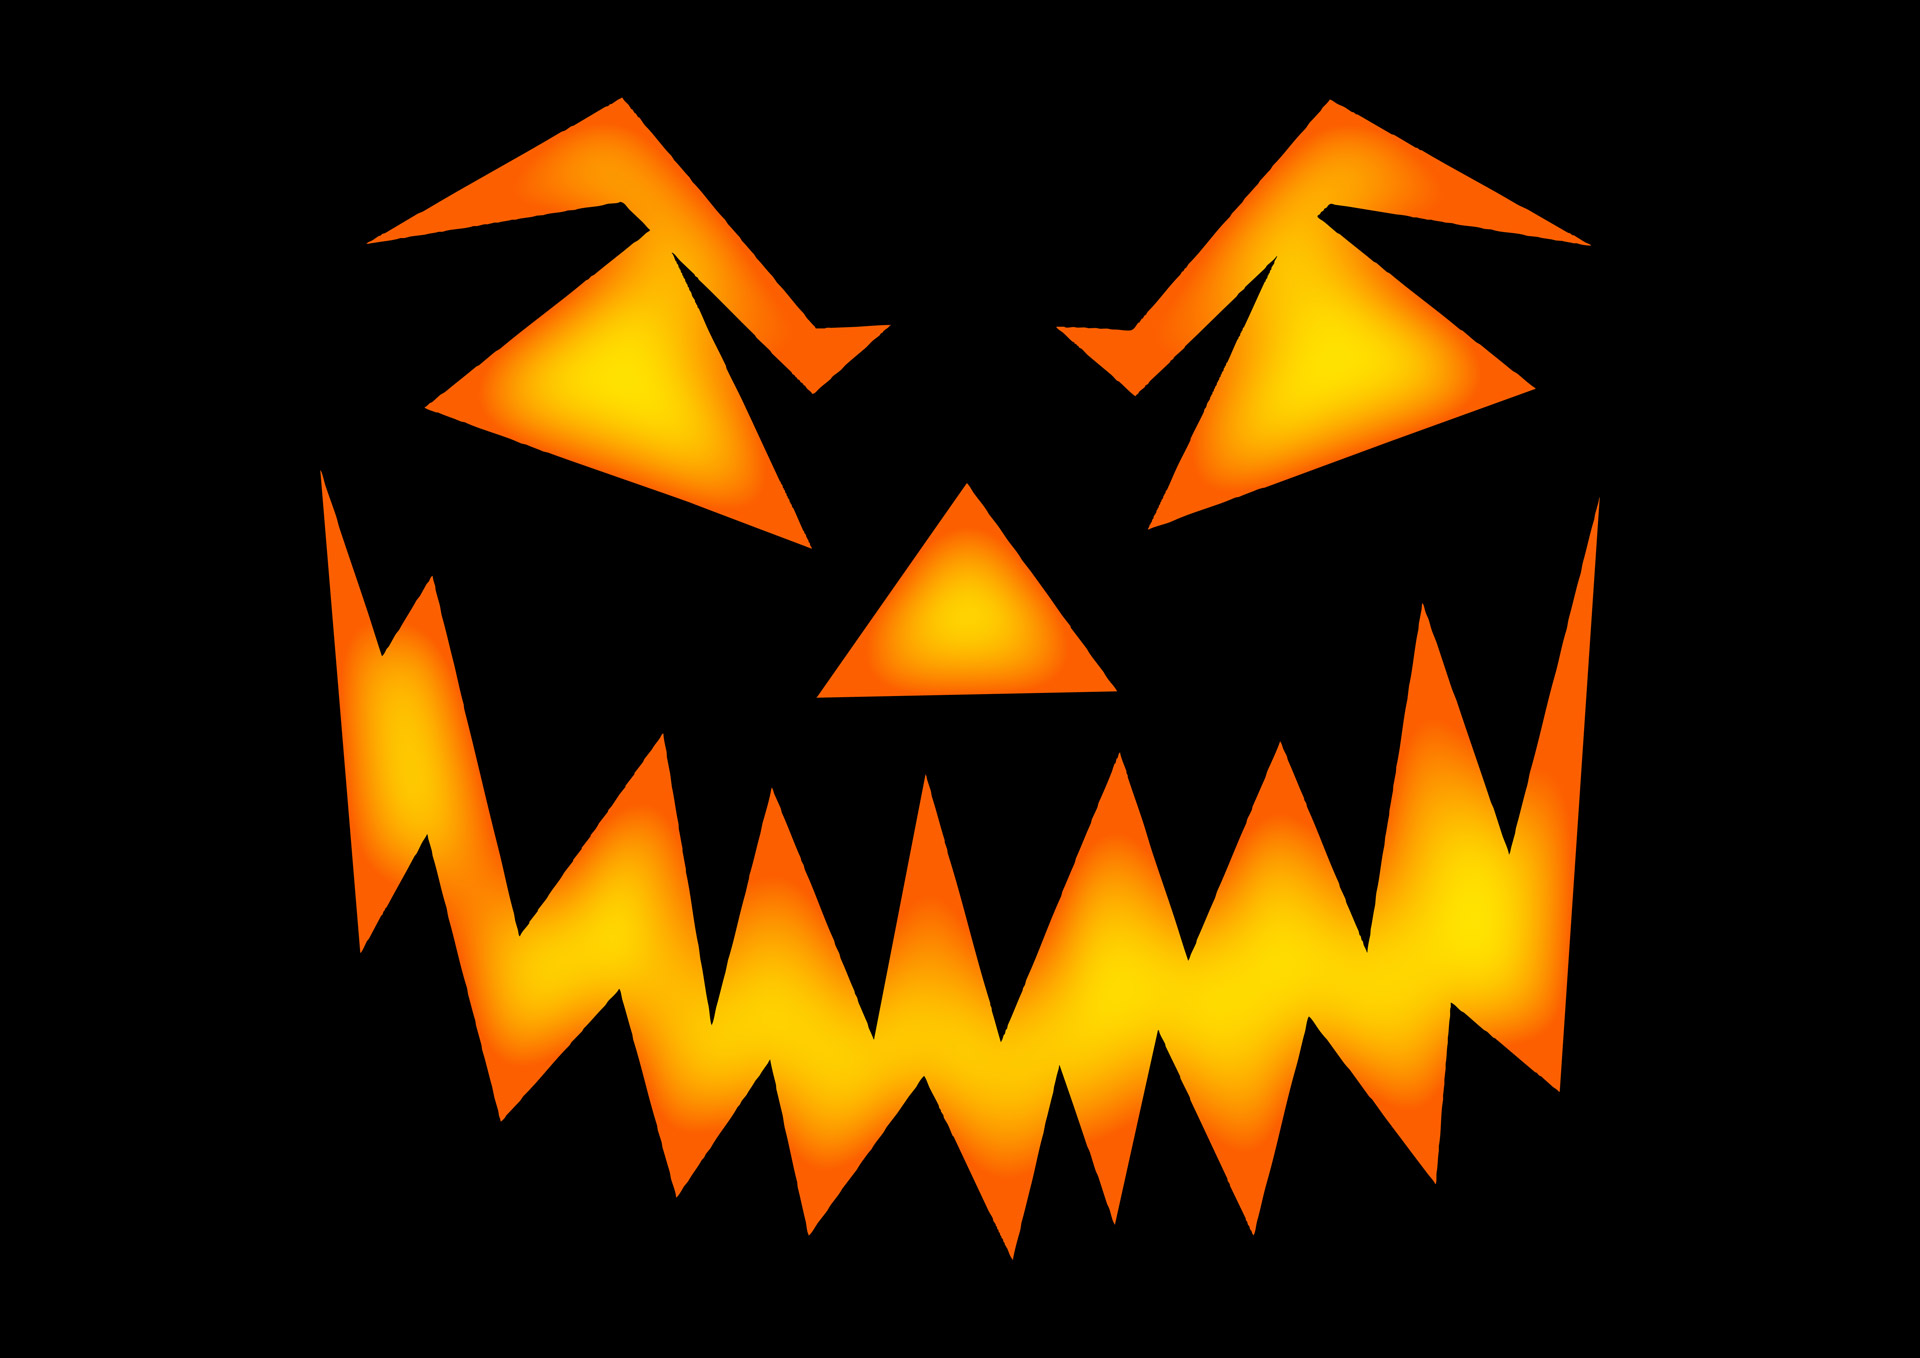 how stay safe during holidays like halloween  aegis clipart of houses black and white clip art of houses made with rocks